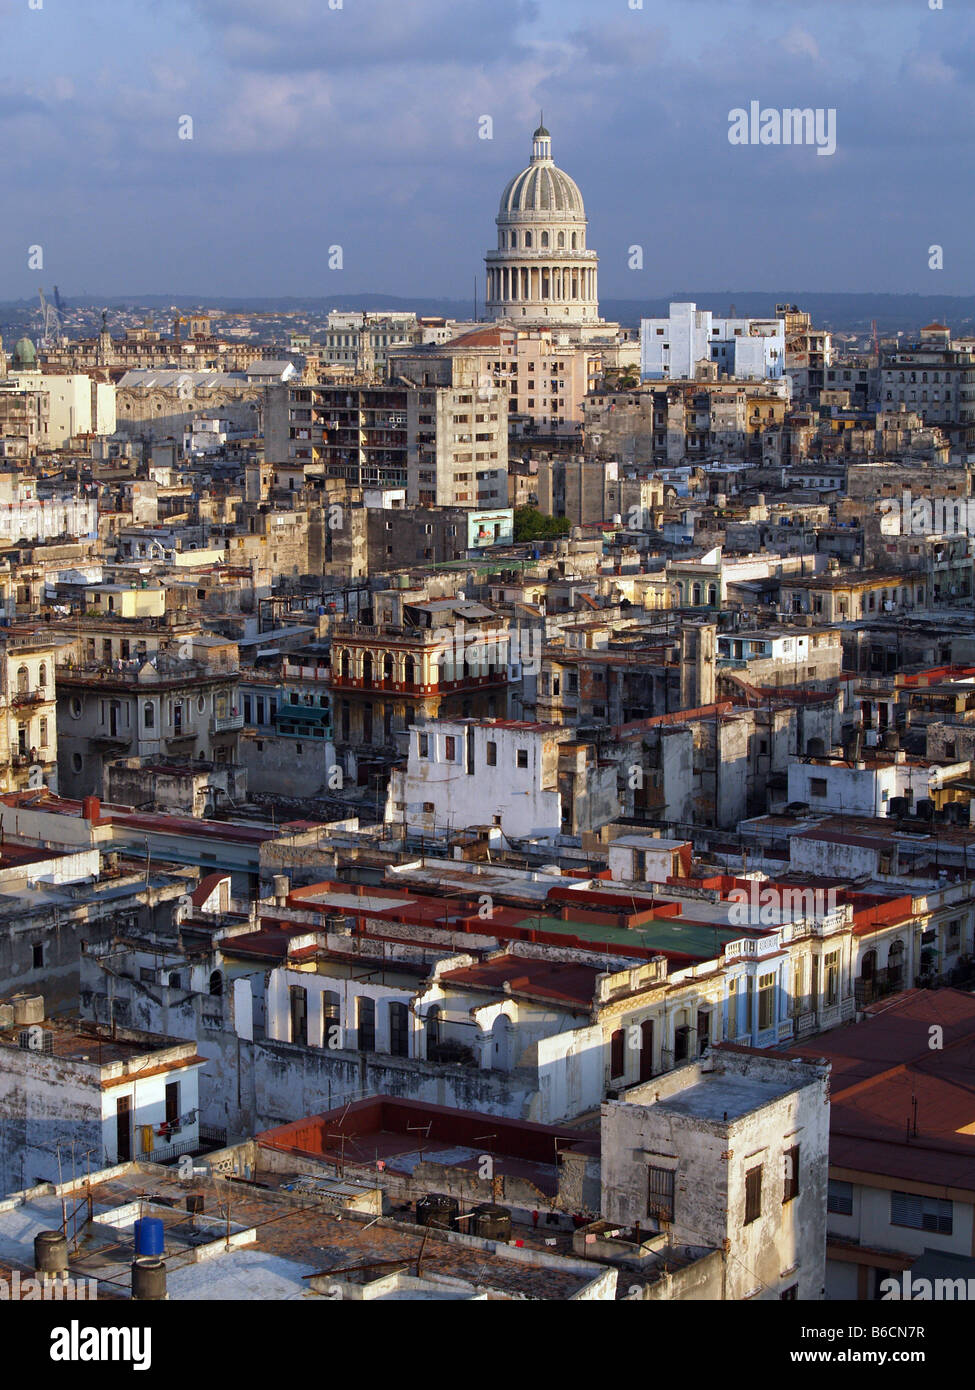 High angle view of city, Greater Antilles, Havana, Cuba - Stock Image